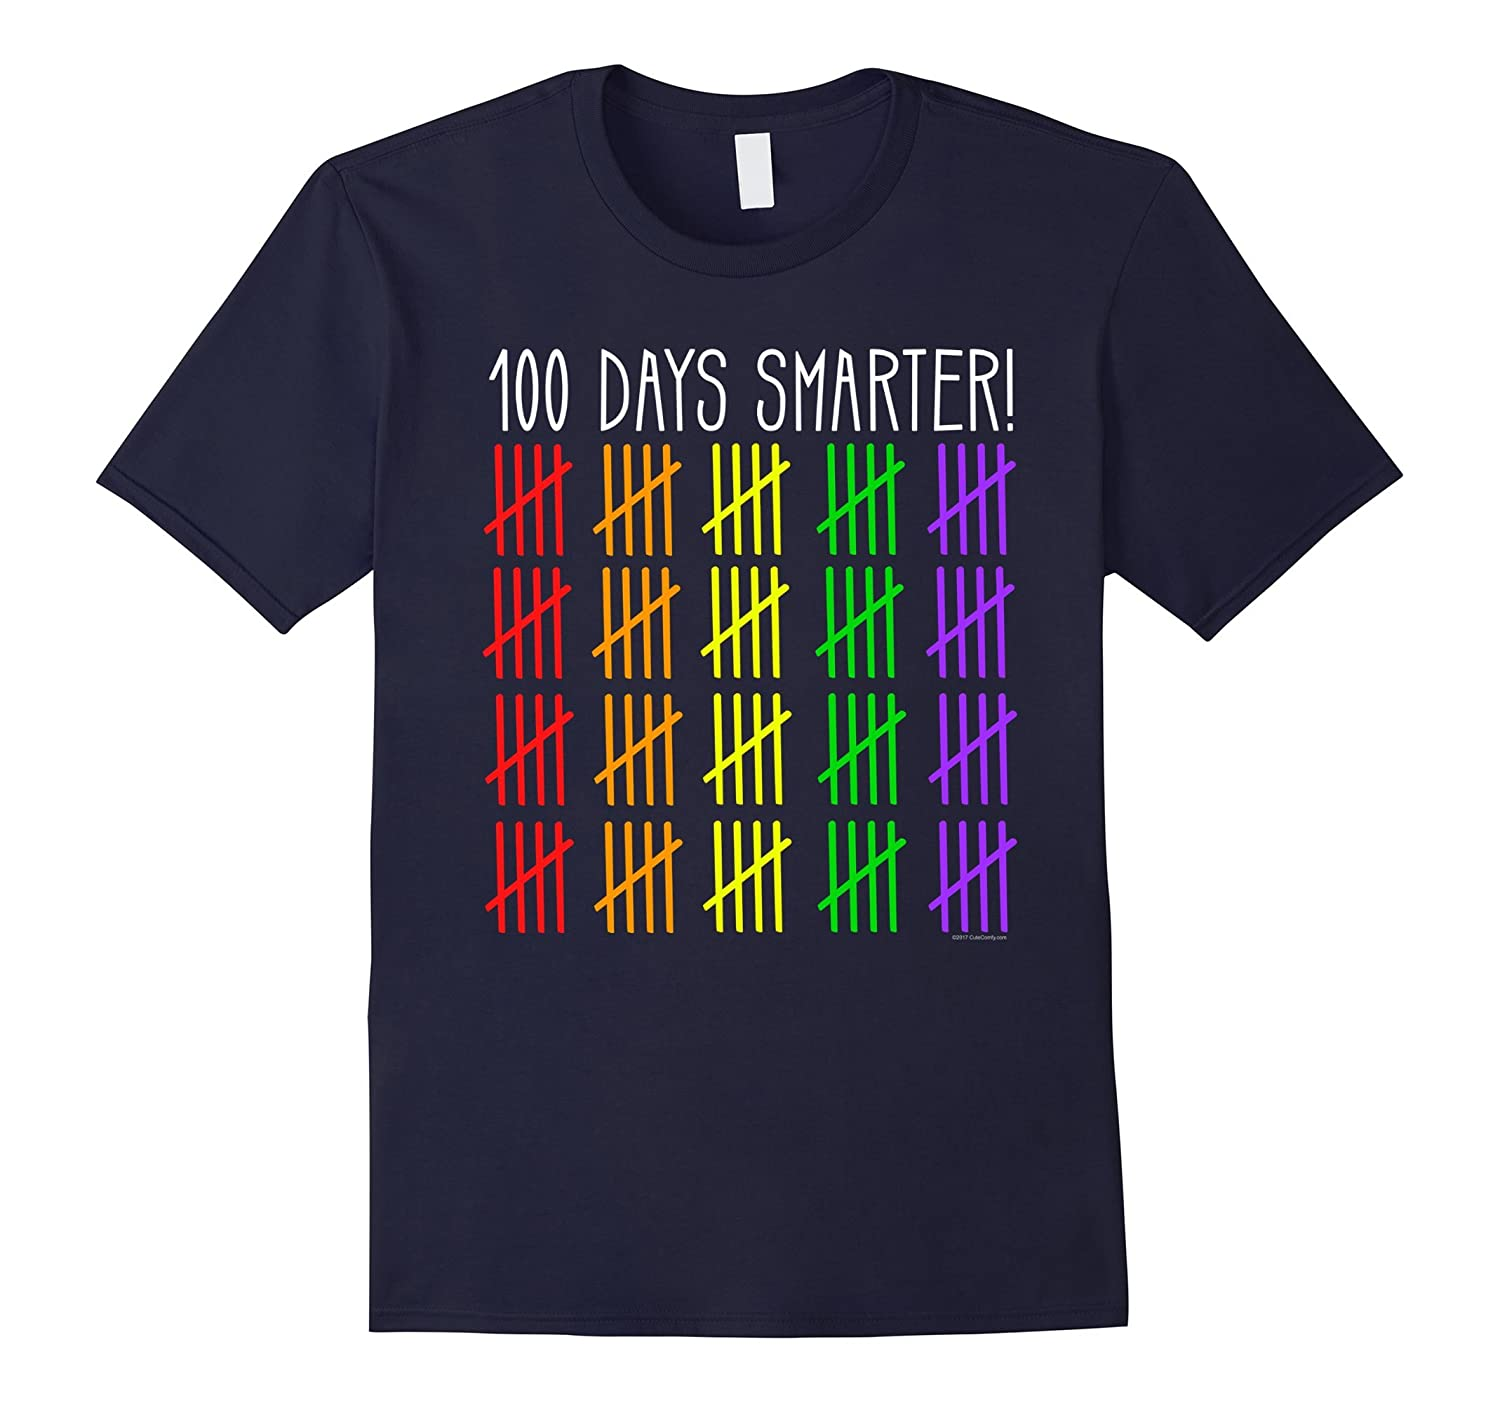 100 Days Smarter Counting Hash Marks Days of School T-Shirt-ah my shirt one gift